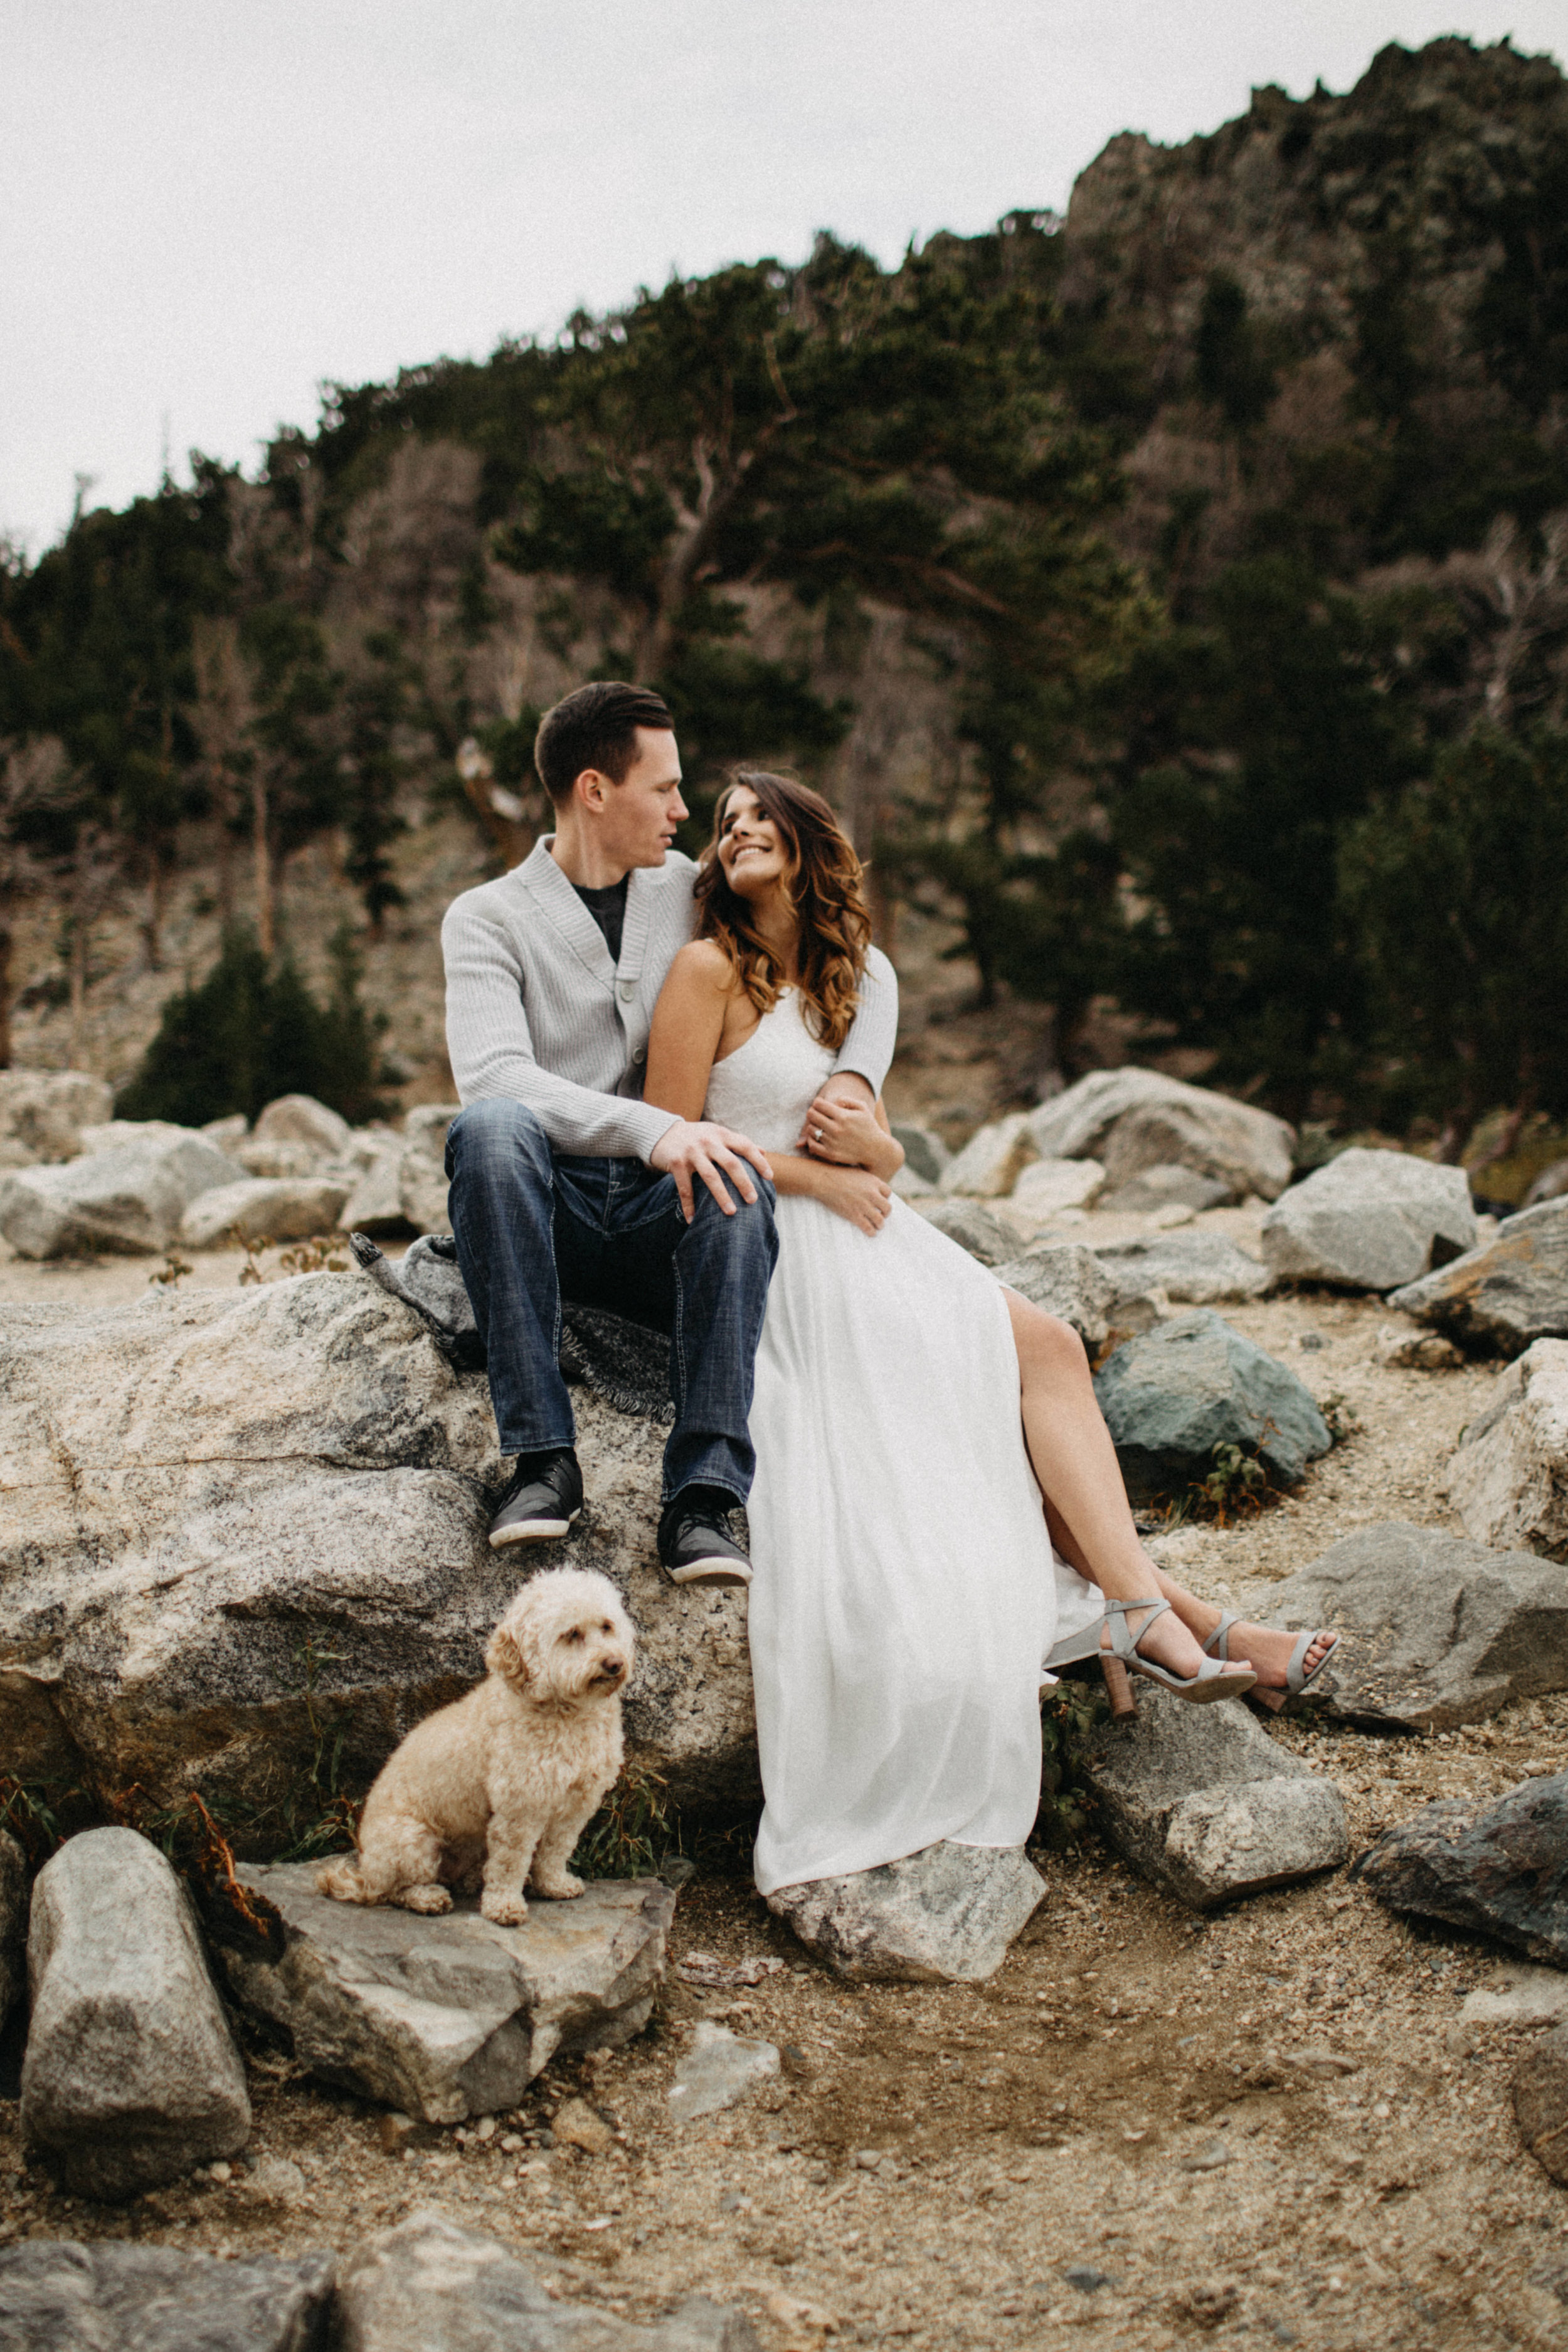 Candid Engagement Photographer in Rocky Mountains, Colorado